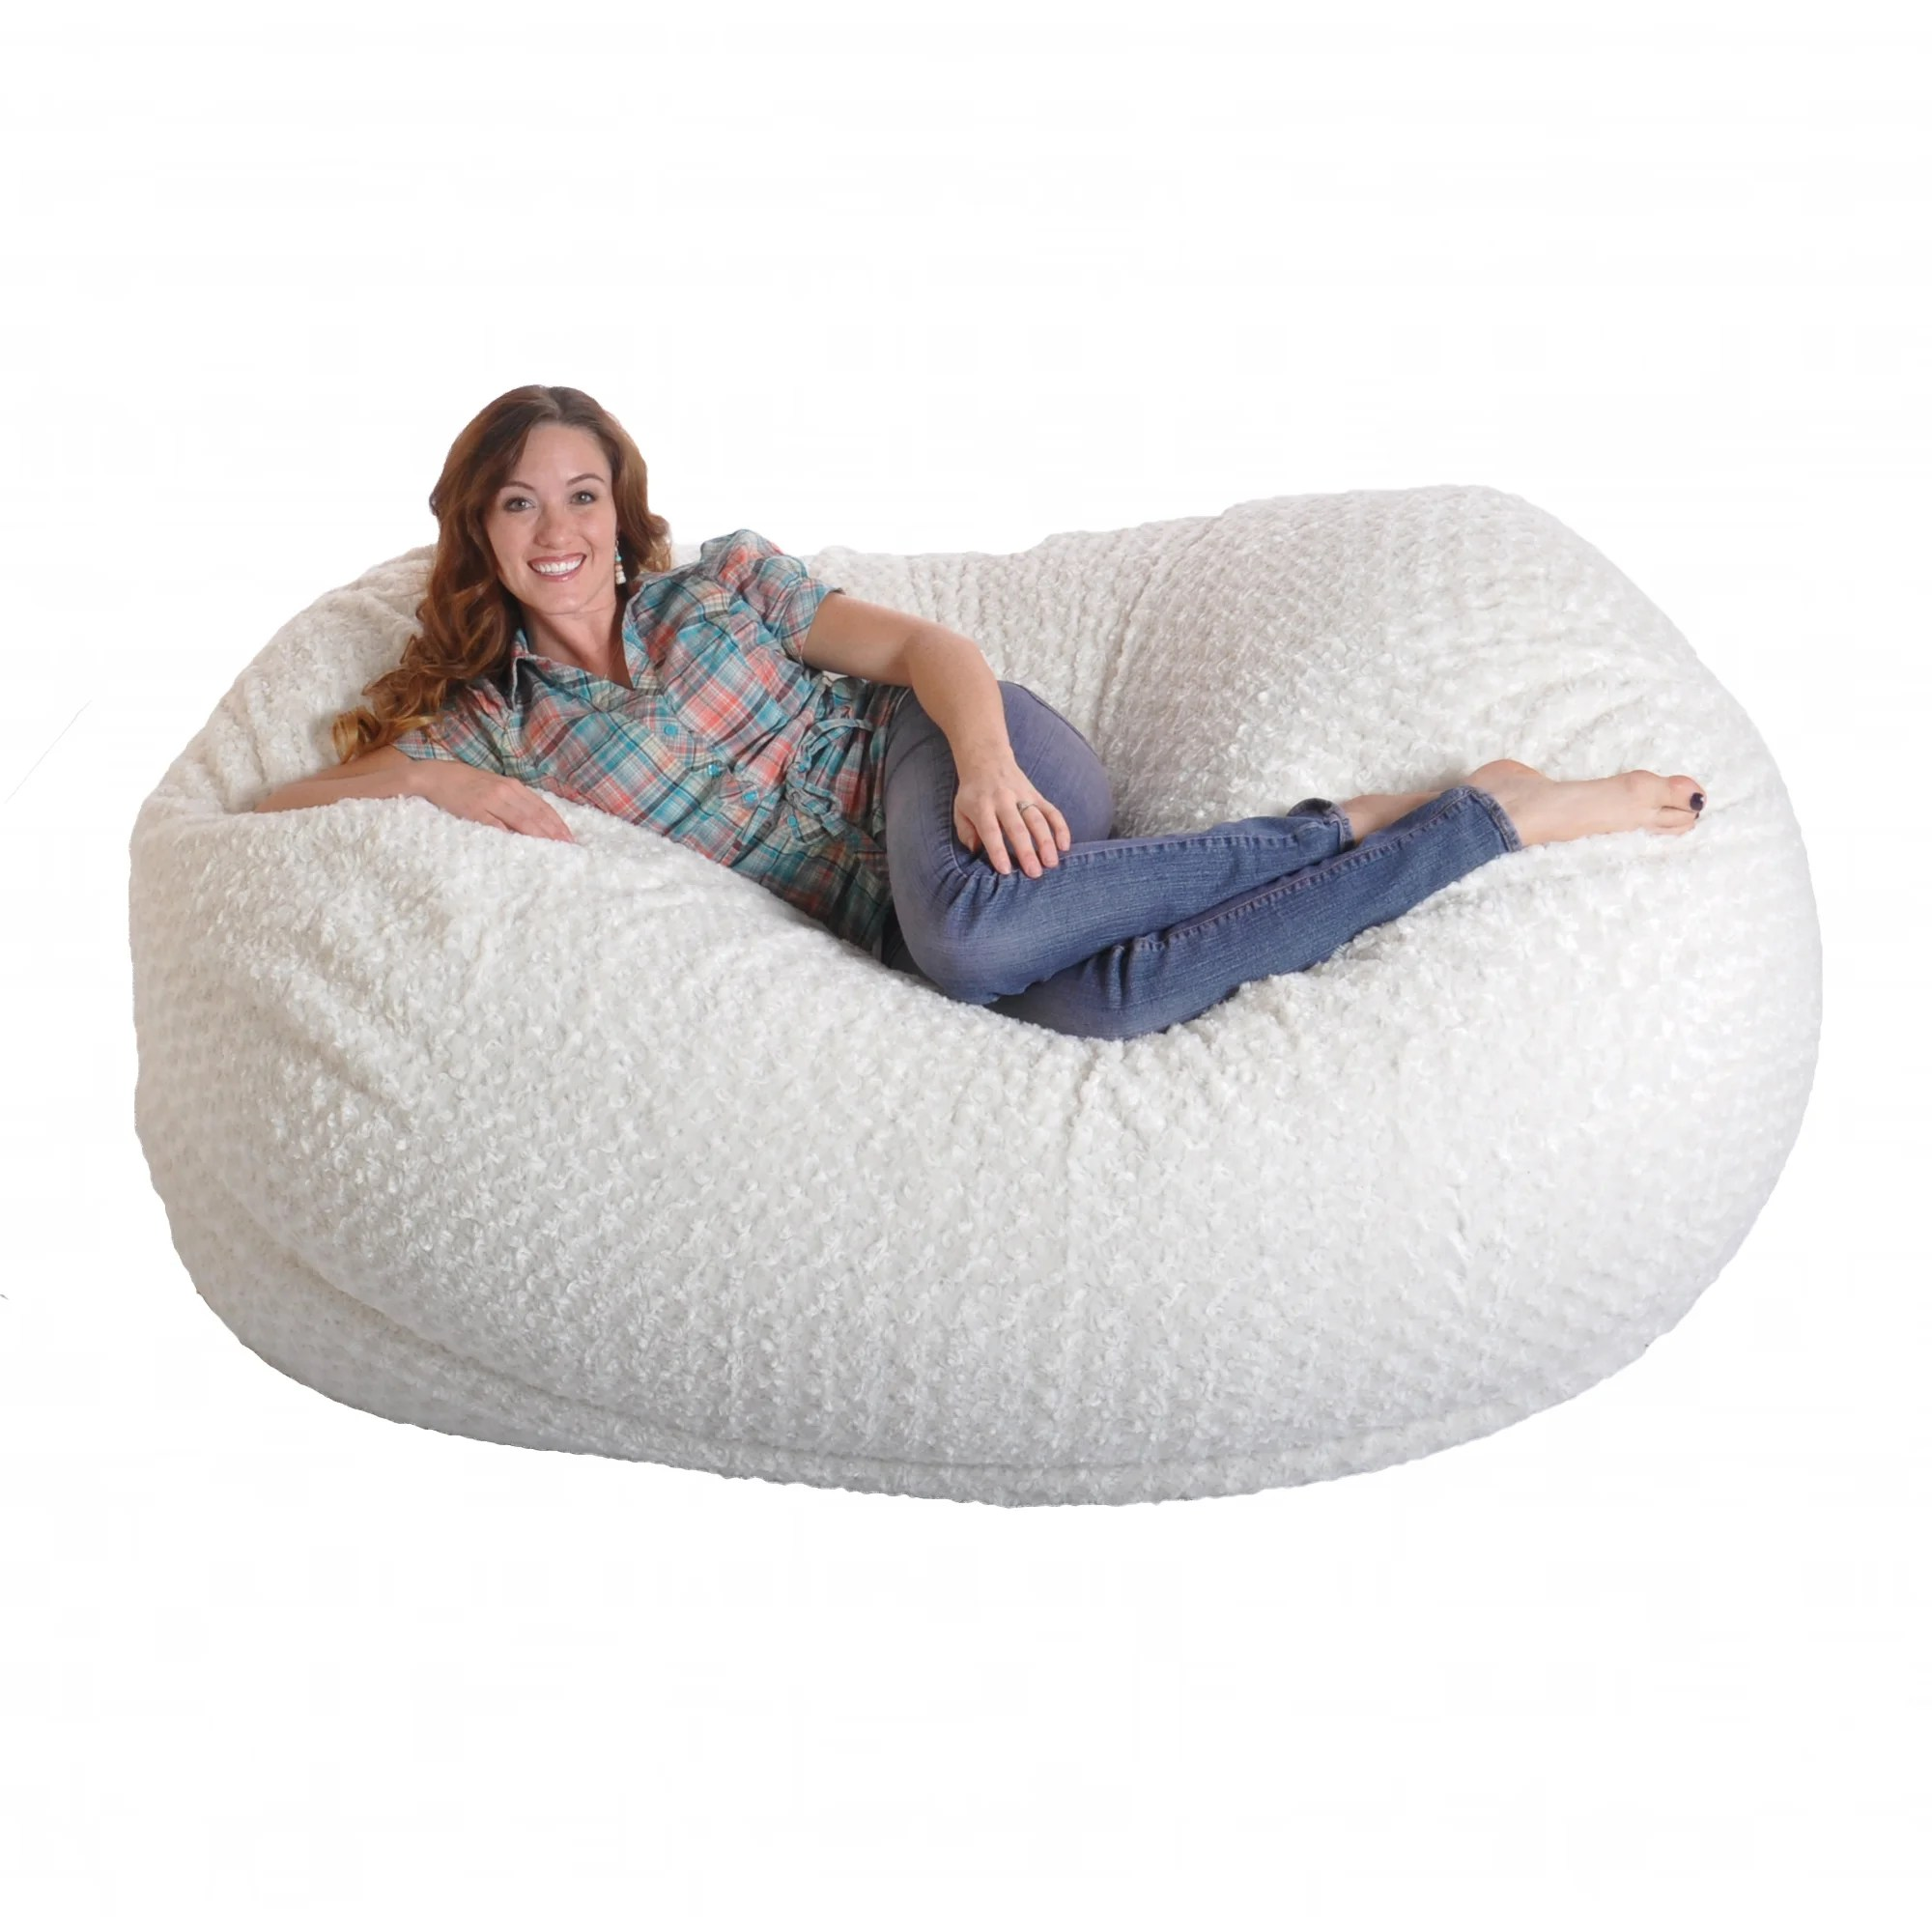 Foam Bean Bag Chair 6 Foot Soft White Fur Large Oval Microfiber Memory Foam